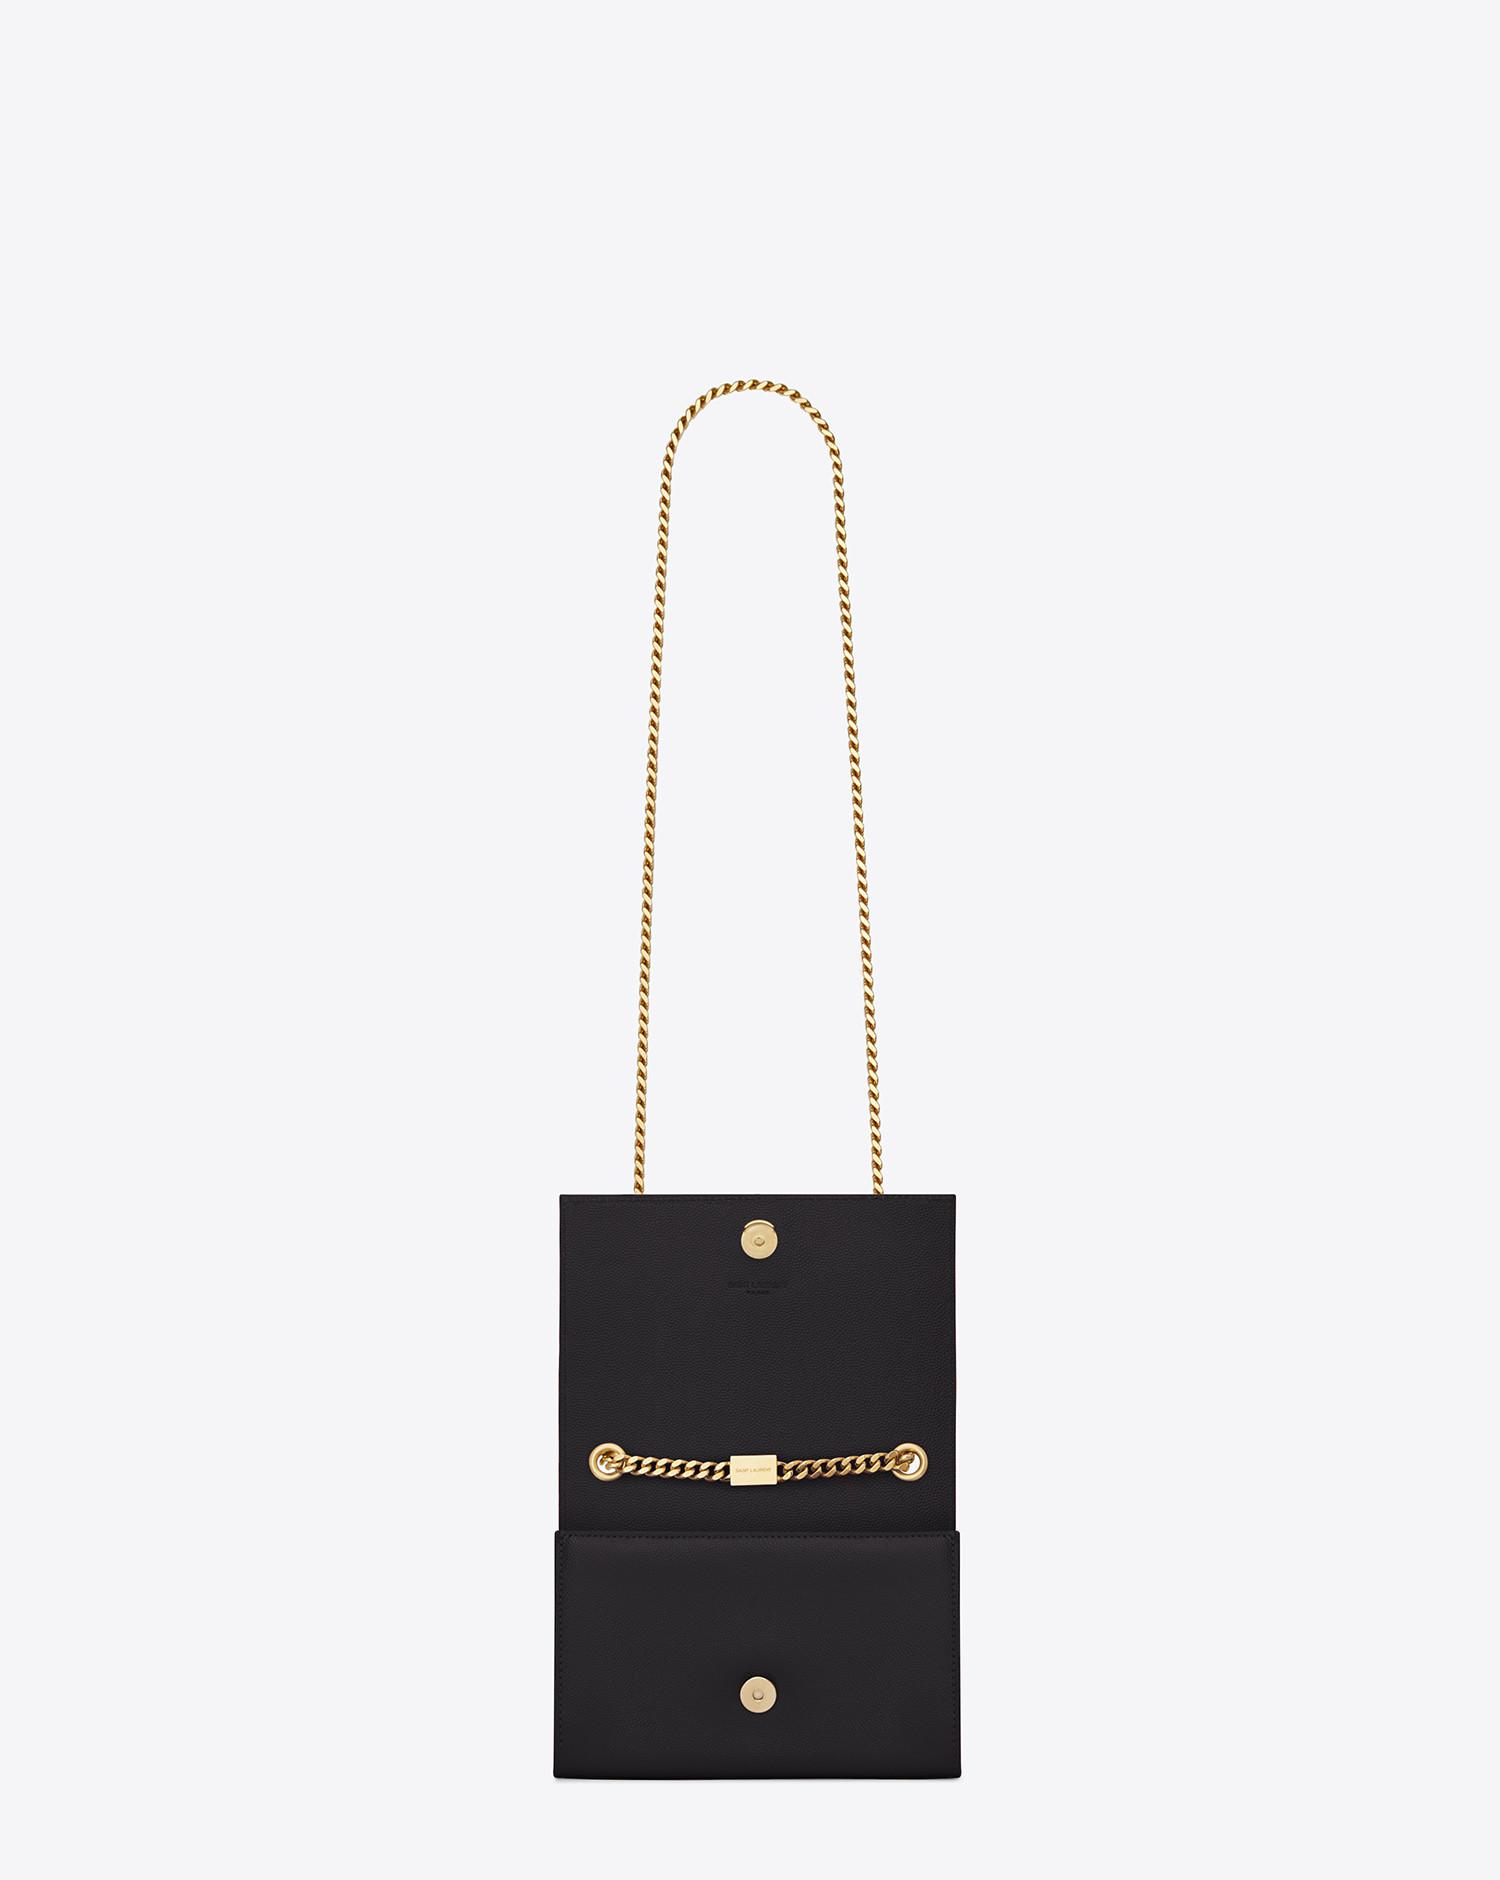 Saint Laurent. Women s Black Classic Small Monogram Leather Shoulder Bag d9d05dbdf5dec